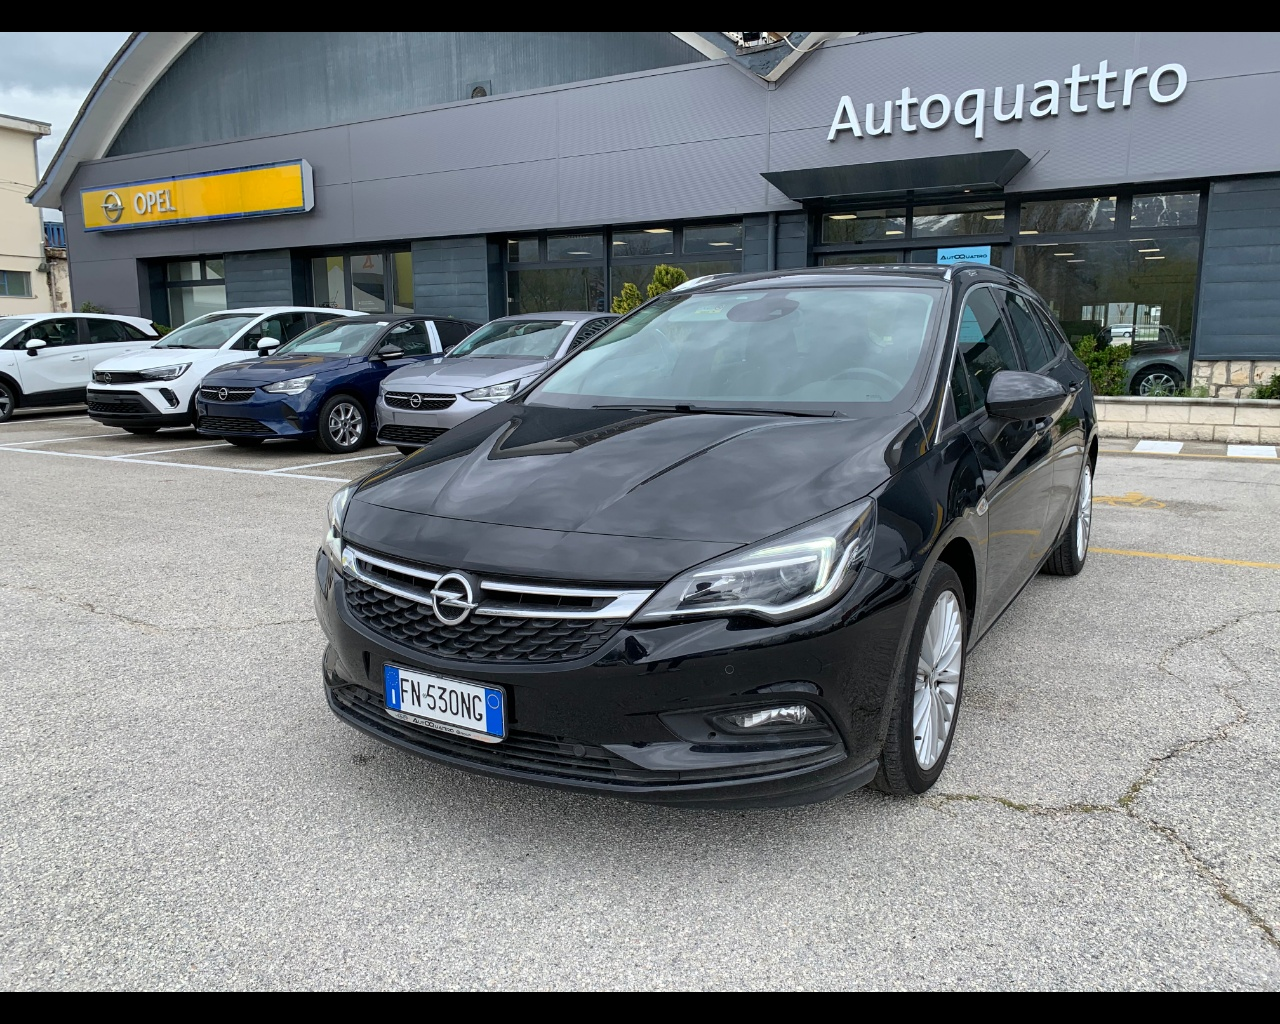 OPEL Astra Sports Tourer 1.6 cdti Innovation s&s 136cv